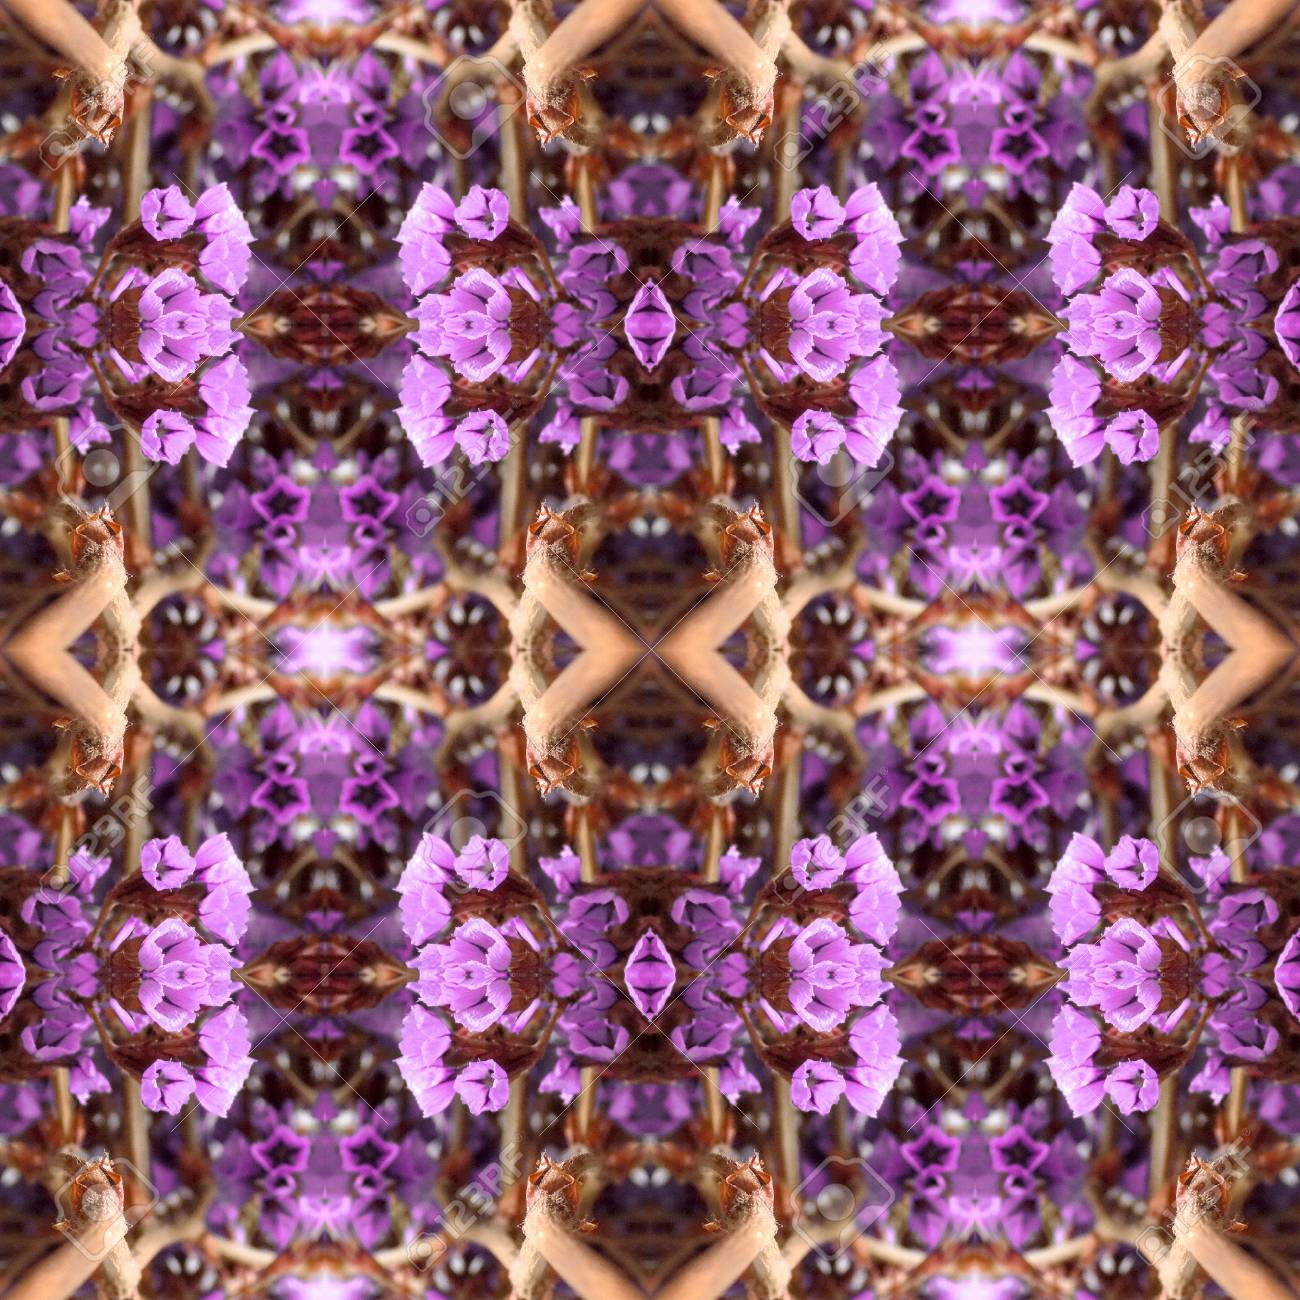 Abstract flowers seamless pattern background. Kaleidoscope from flowers. Hydraulic tile design. - 104074713